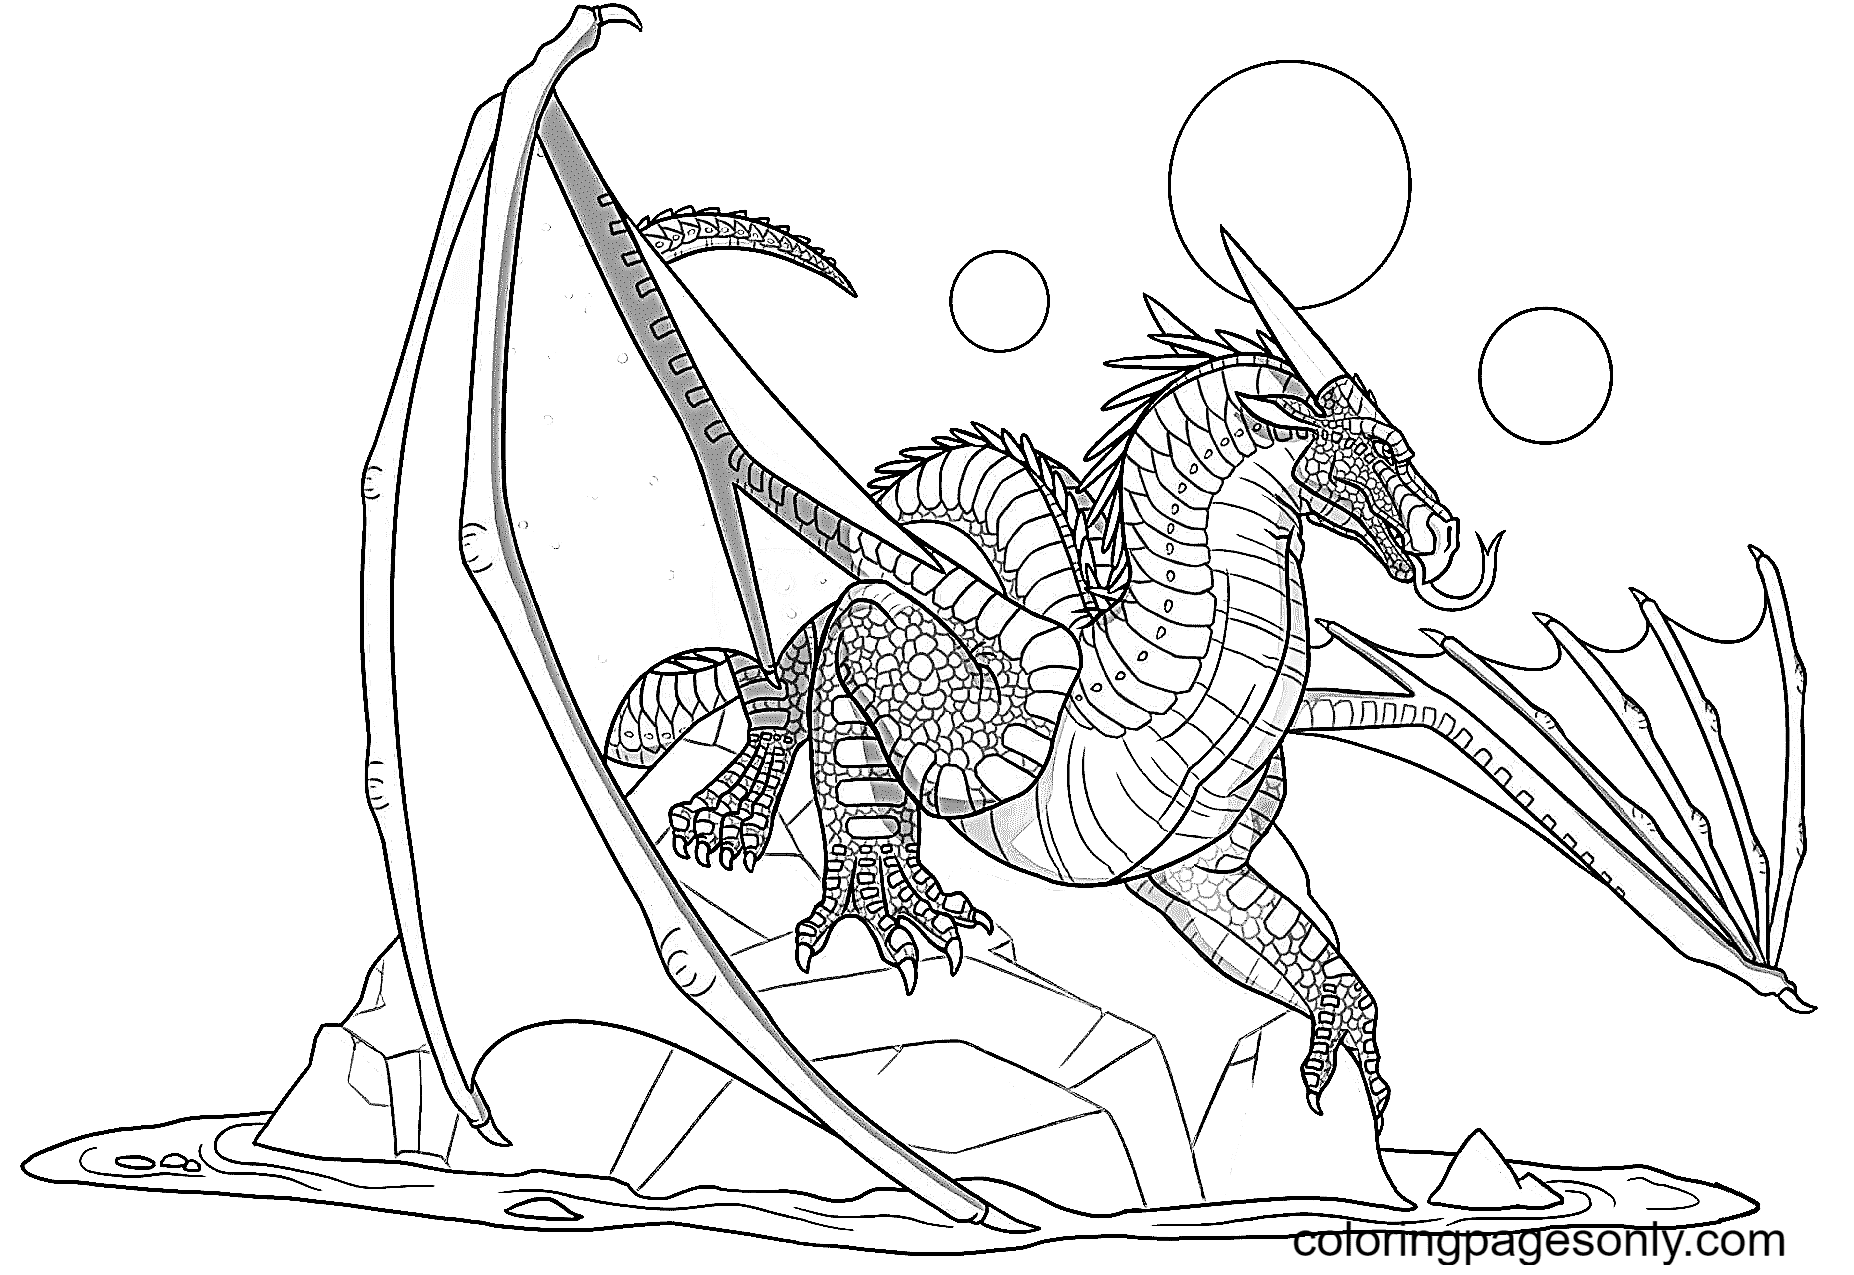 Nightwing Dragon on the rock Coloring Page